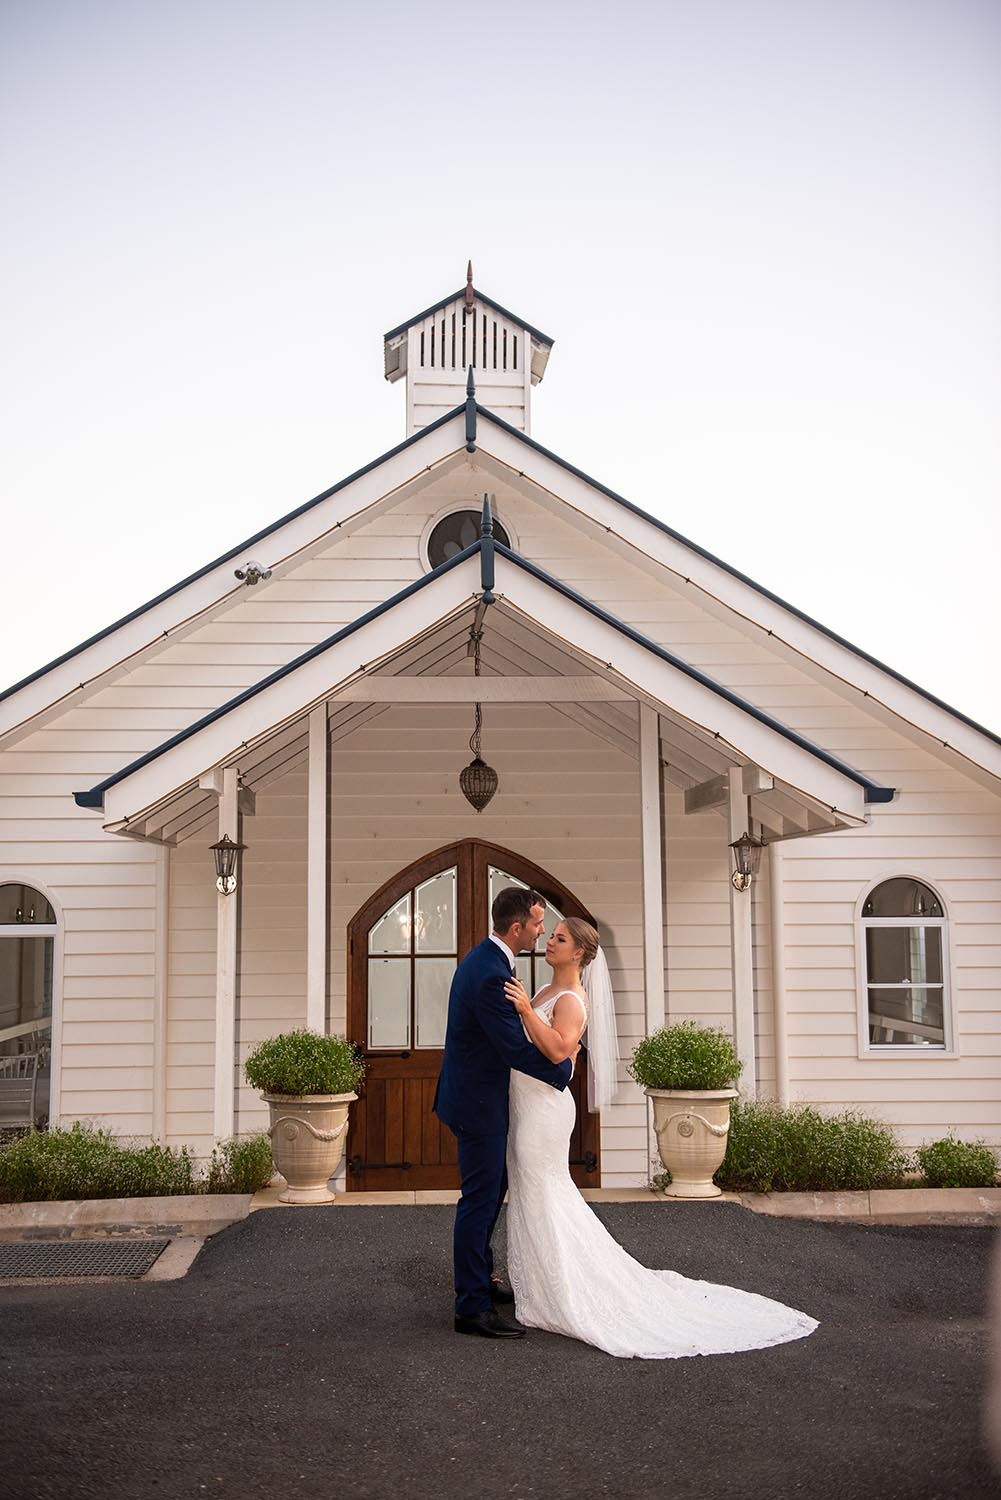 Wedding Photography - Couple in front of church